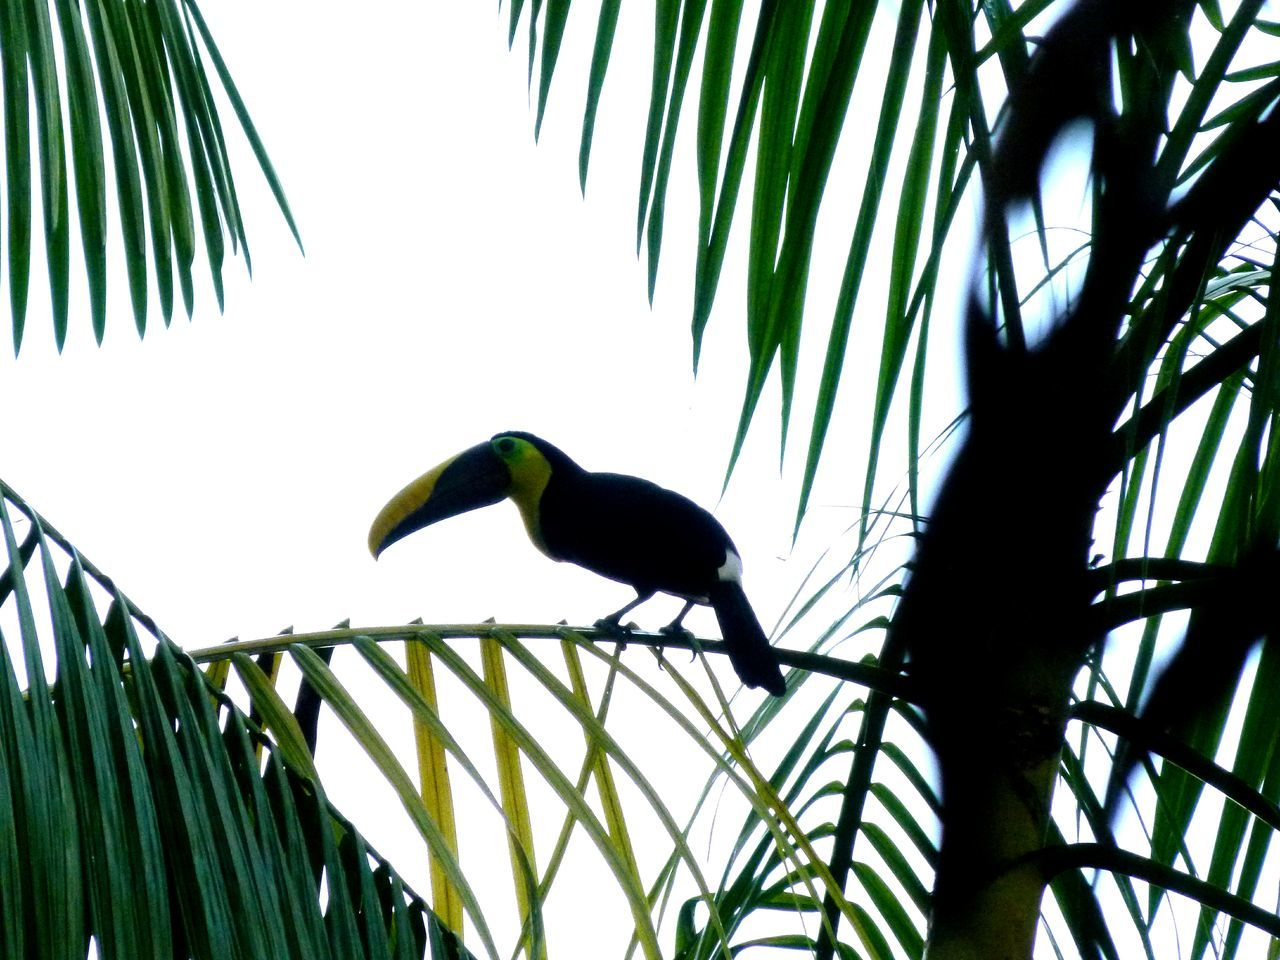 Bird Nature Tucan Costa Rica Outdoors Animals In The Wild